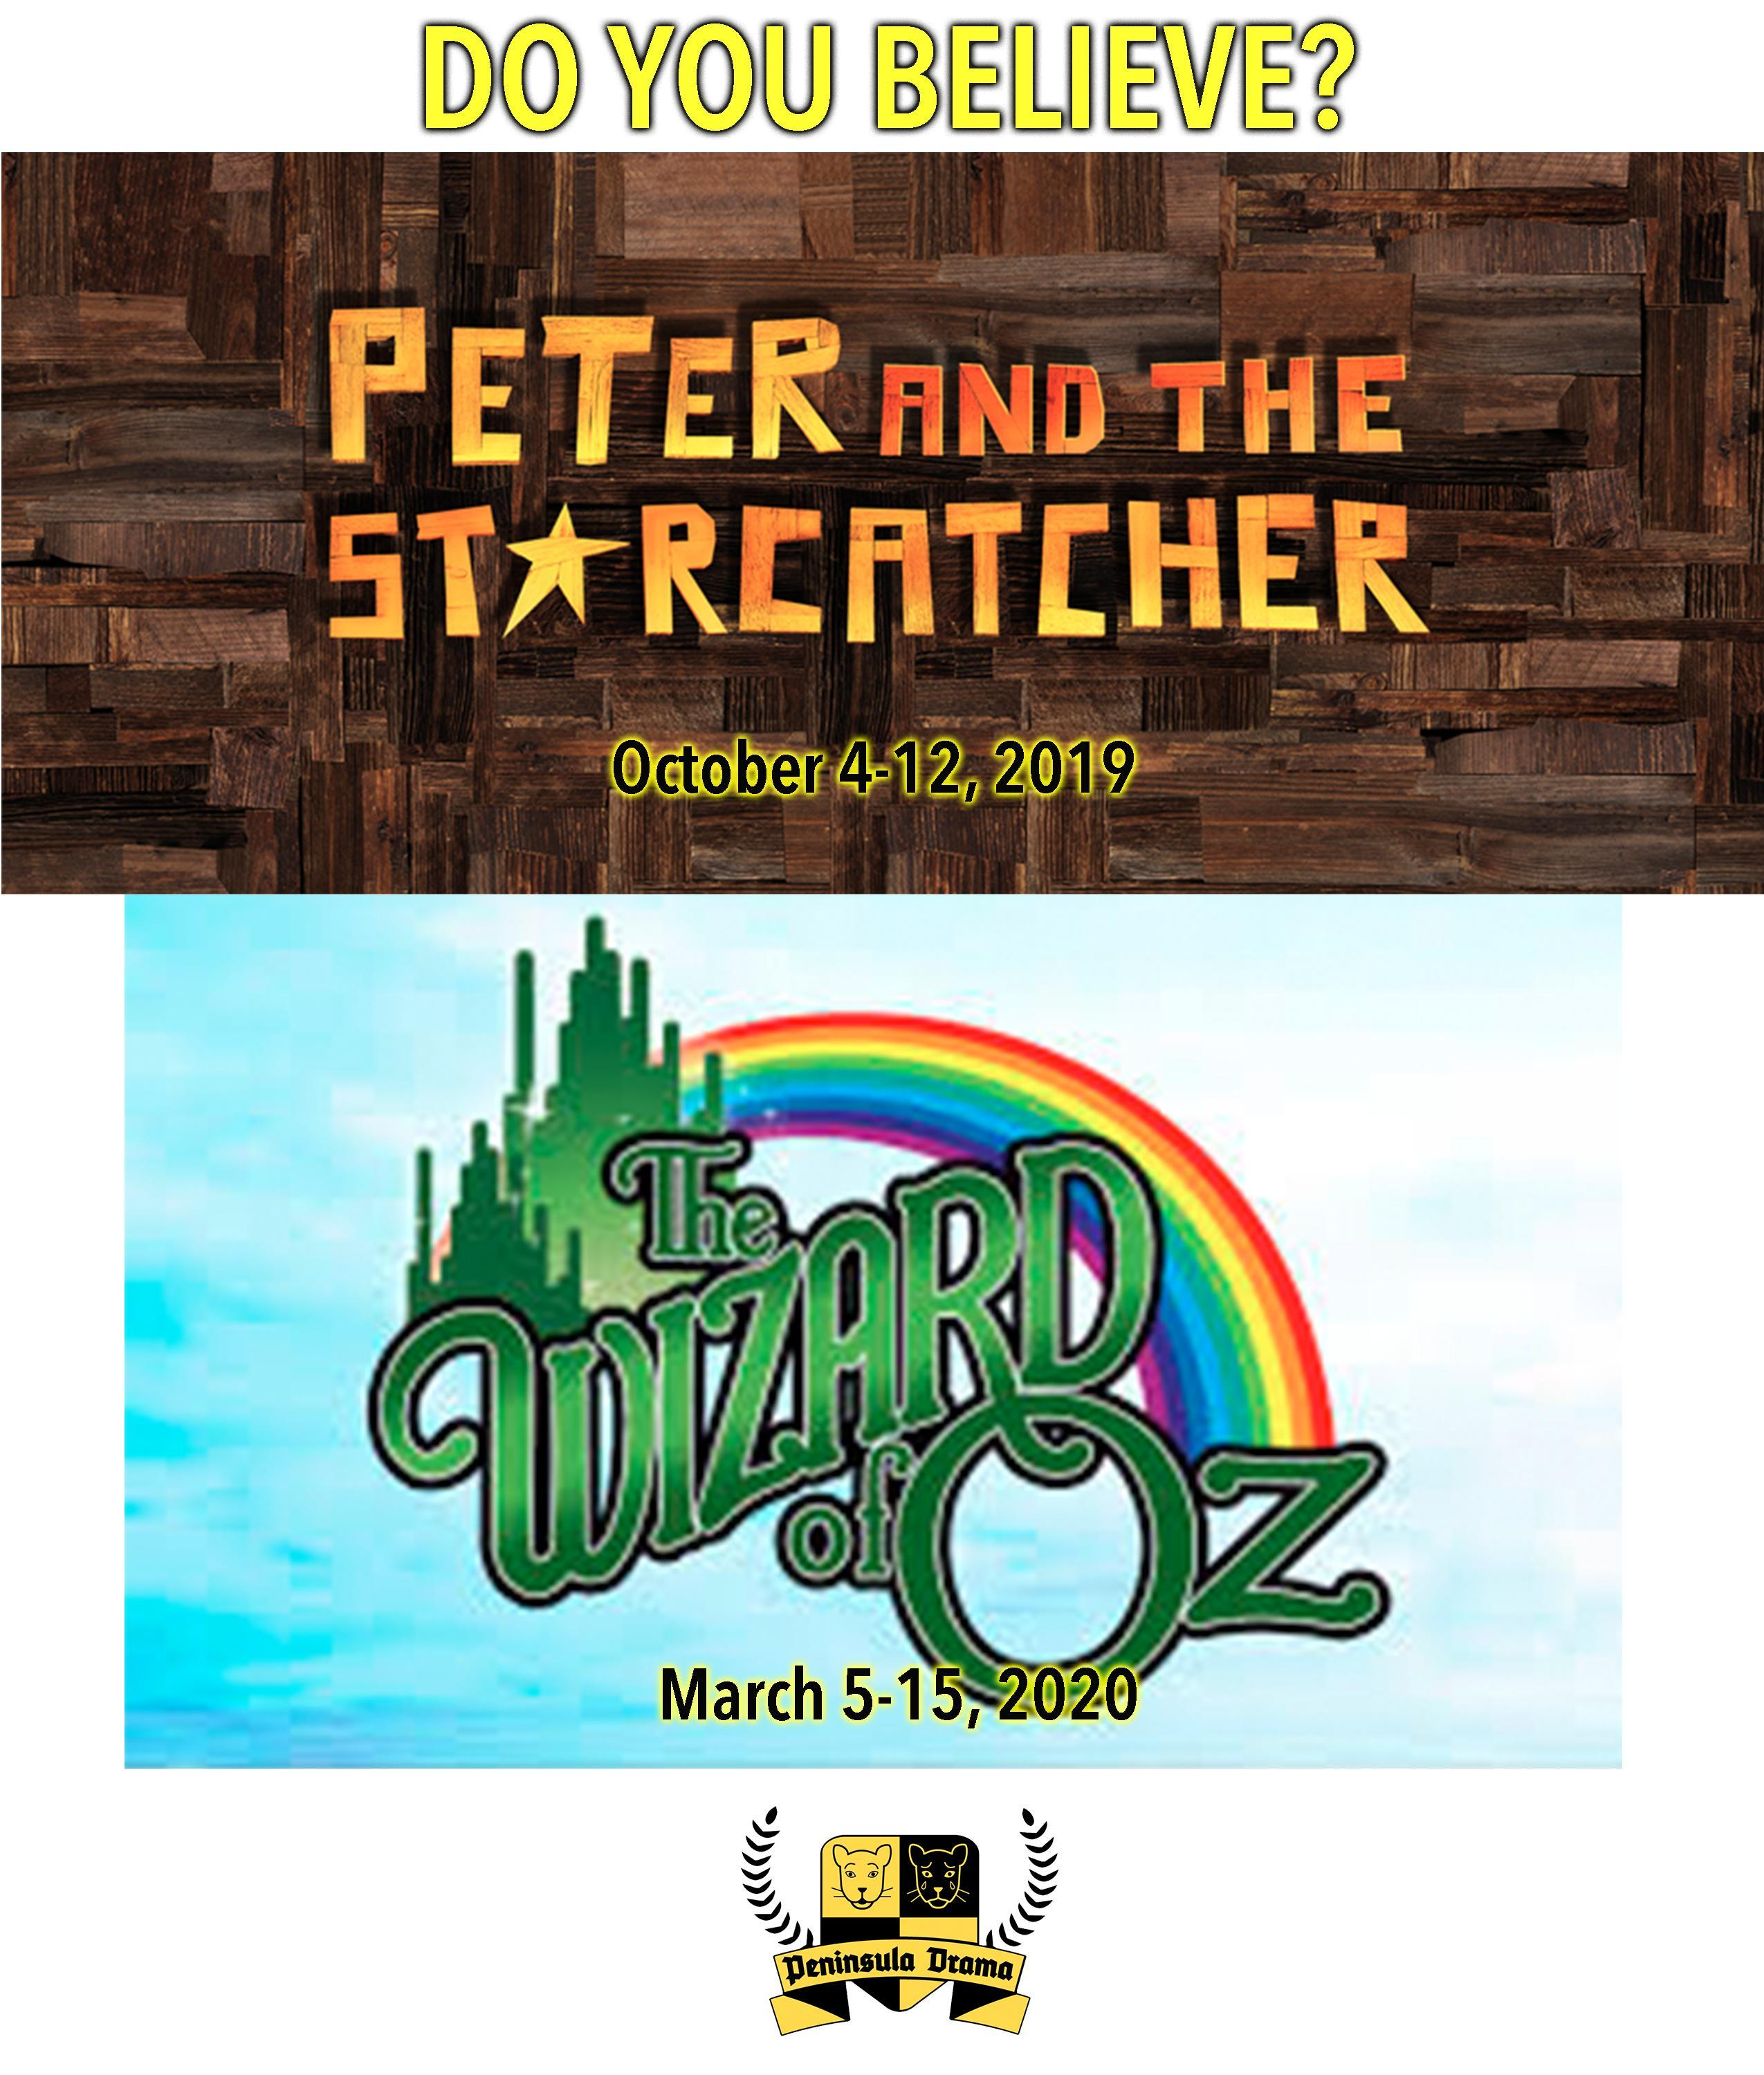 Peter and the Starcatcher, October, 2019; Wizard of Oz, March, 2020